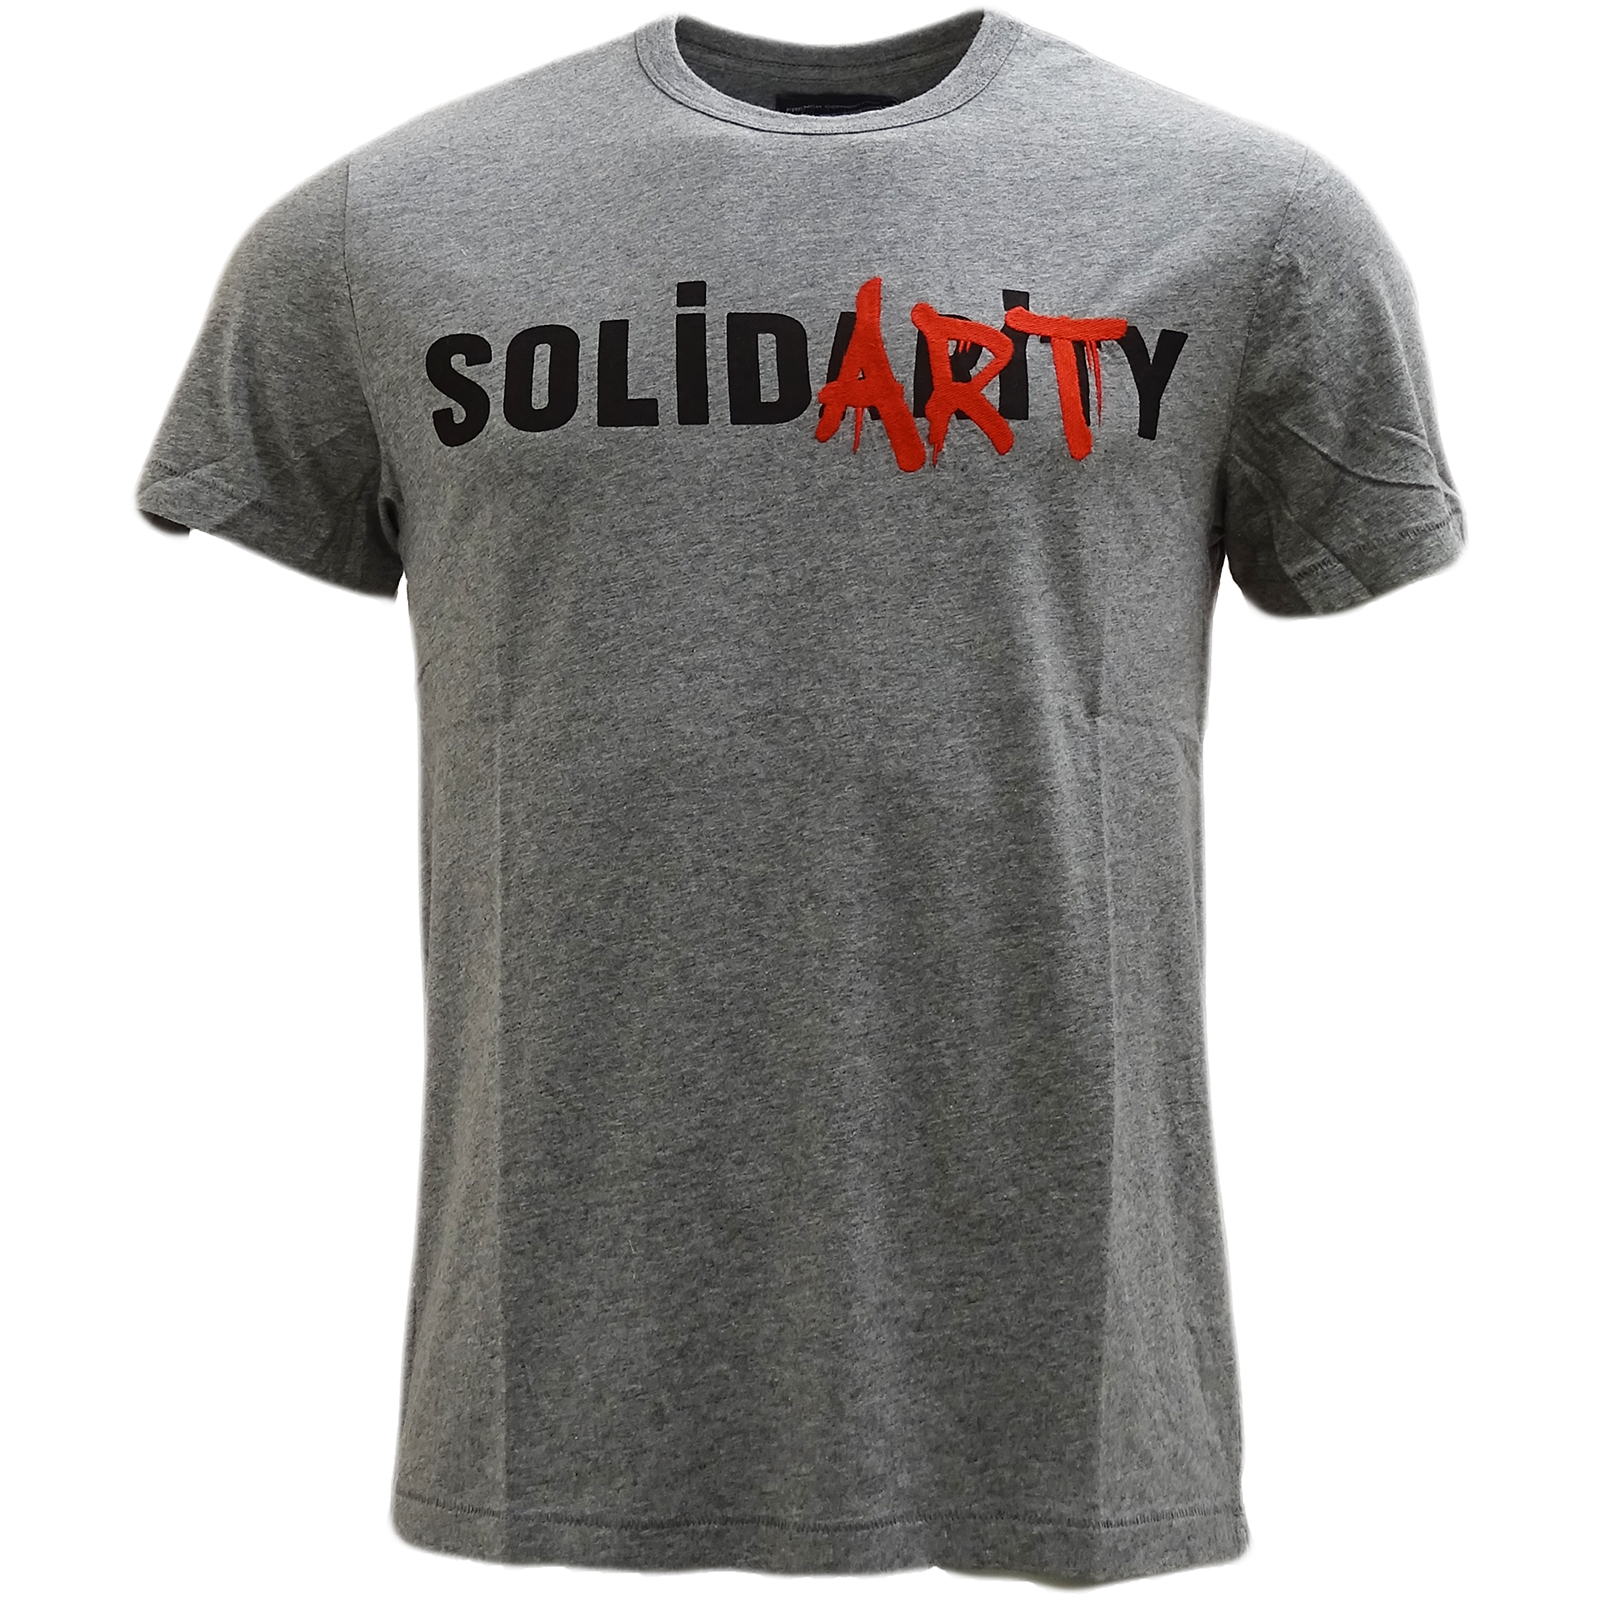 French Connection Charcoal Solidarity Logo T-Shirt 56Jbq -